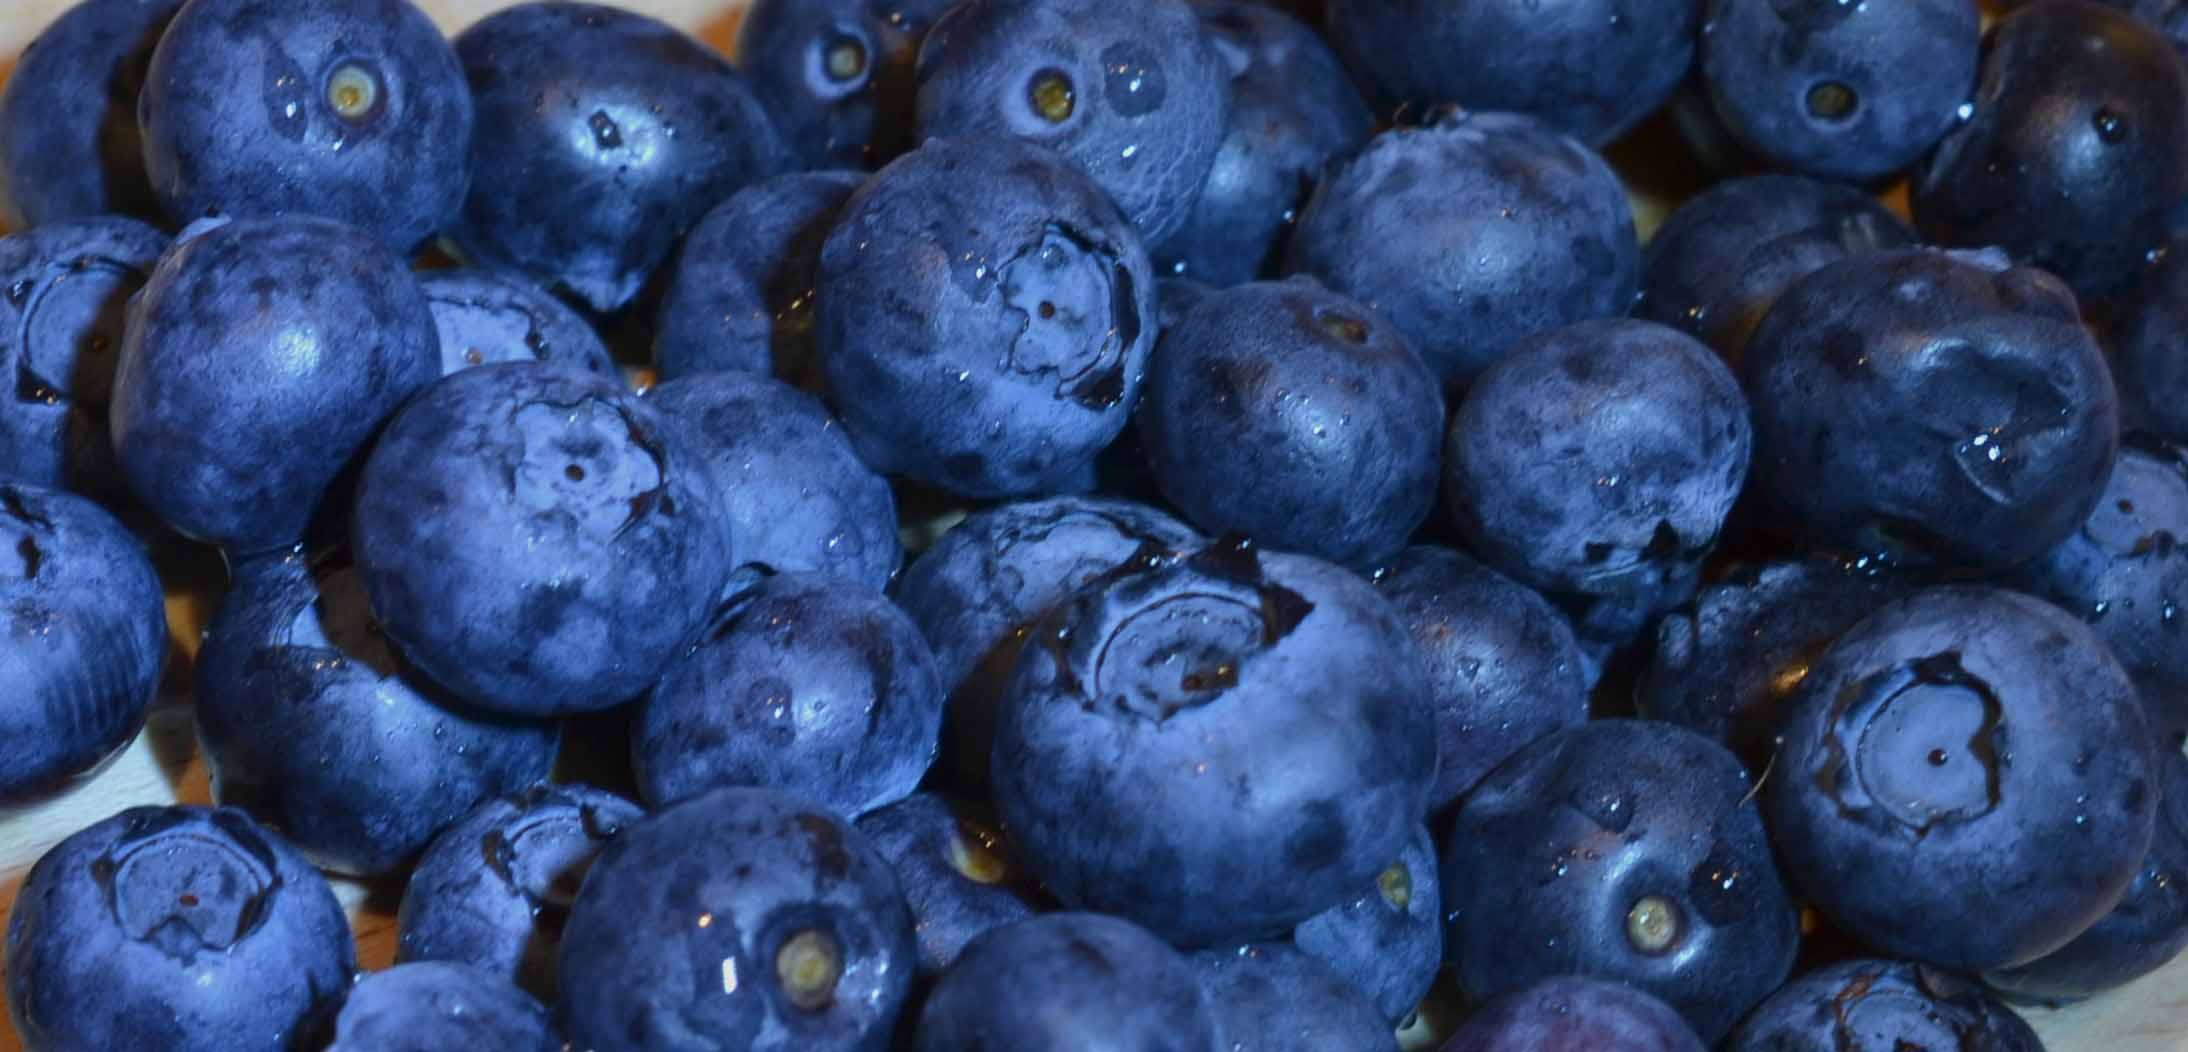 How To Grow Blueberries Amp Bake Healthy Blueberry